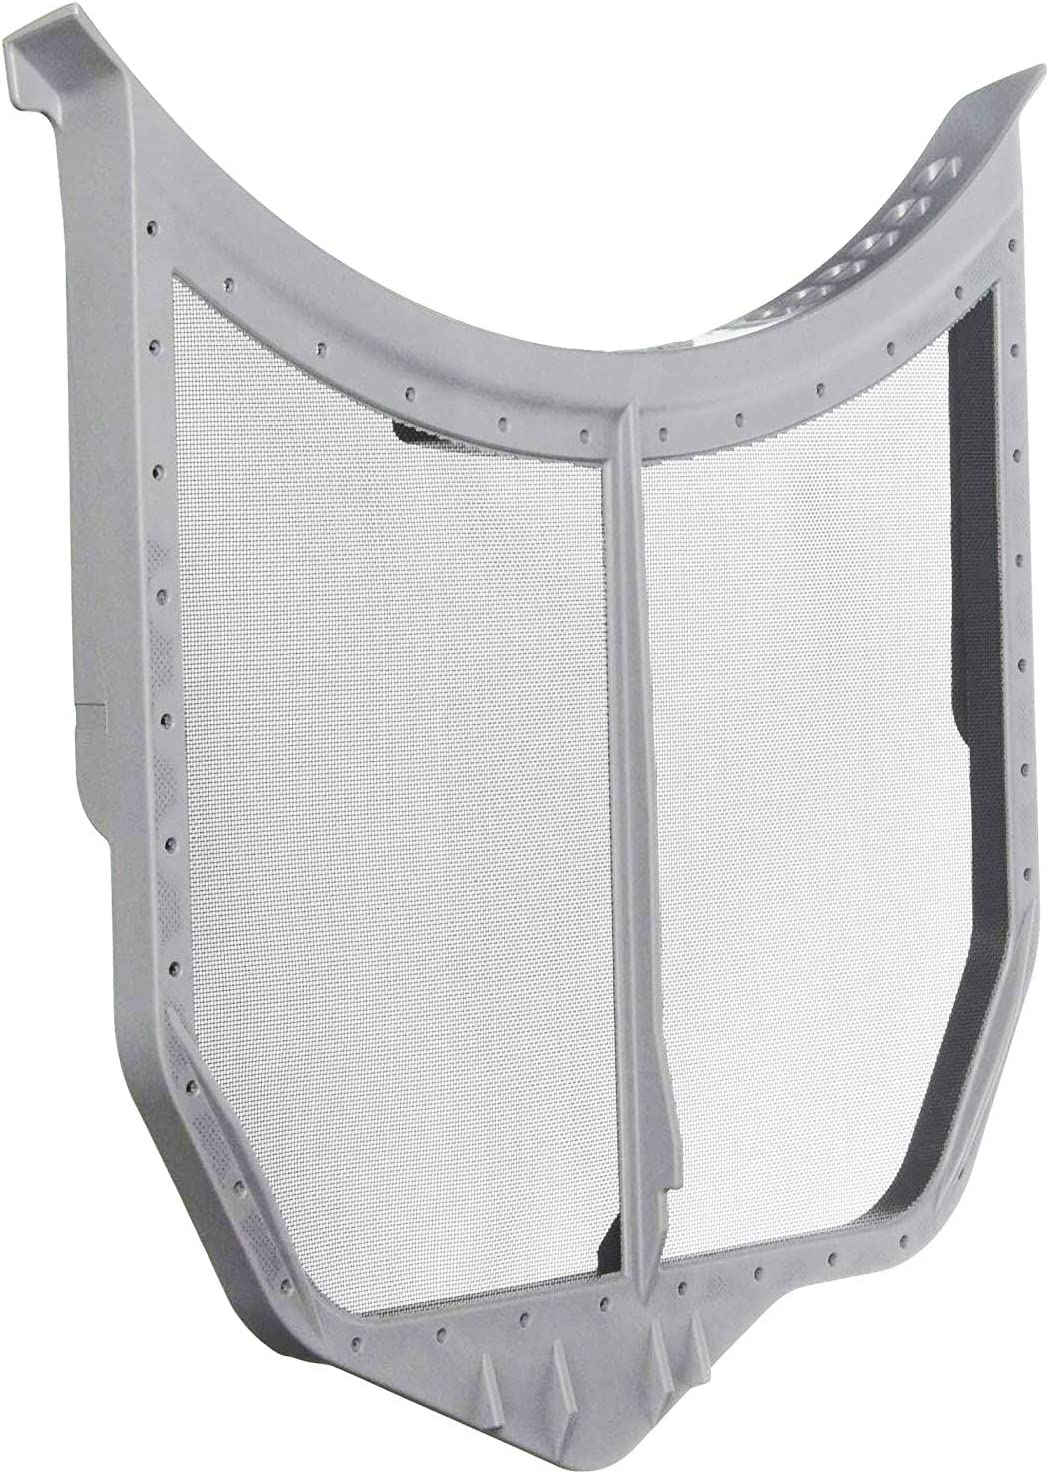 Primeswift W10516085 Dryer Lint Trap Screen Filter,Replacement for W10370972 WPW10516085 AP5805320 3188345 PS8769976,1Pack